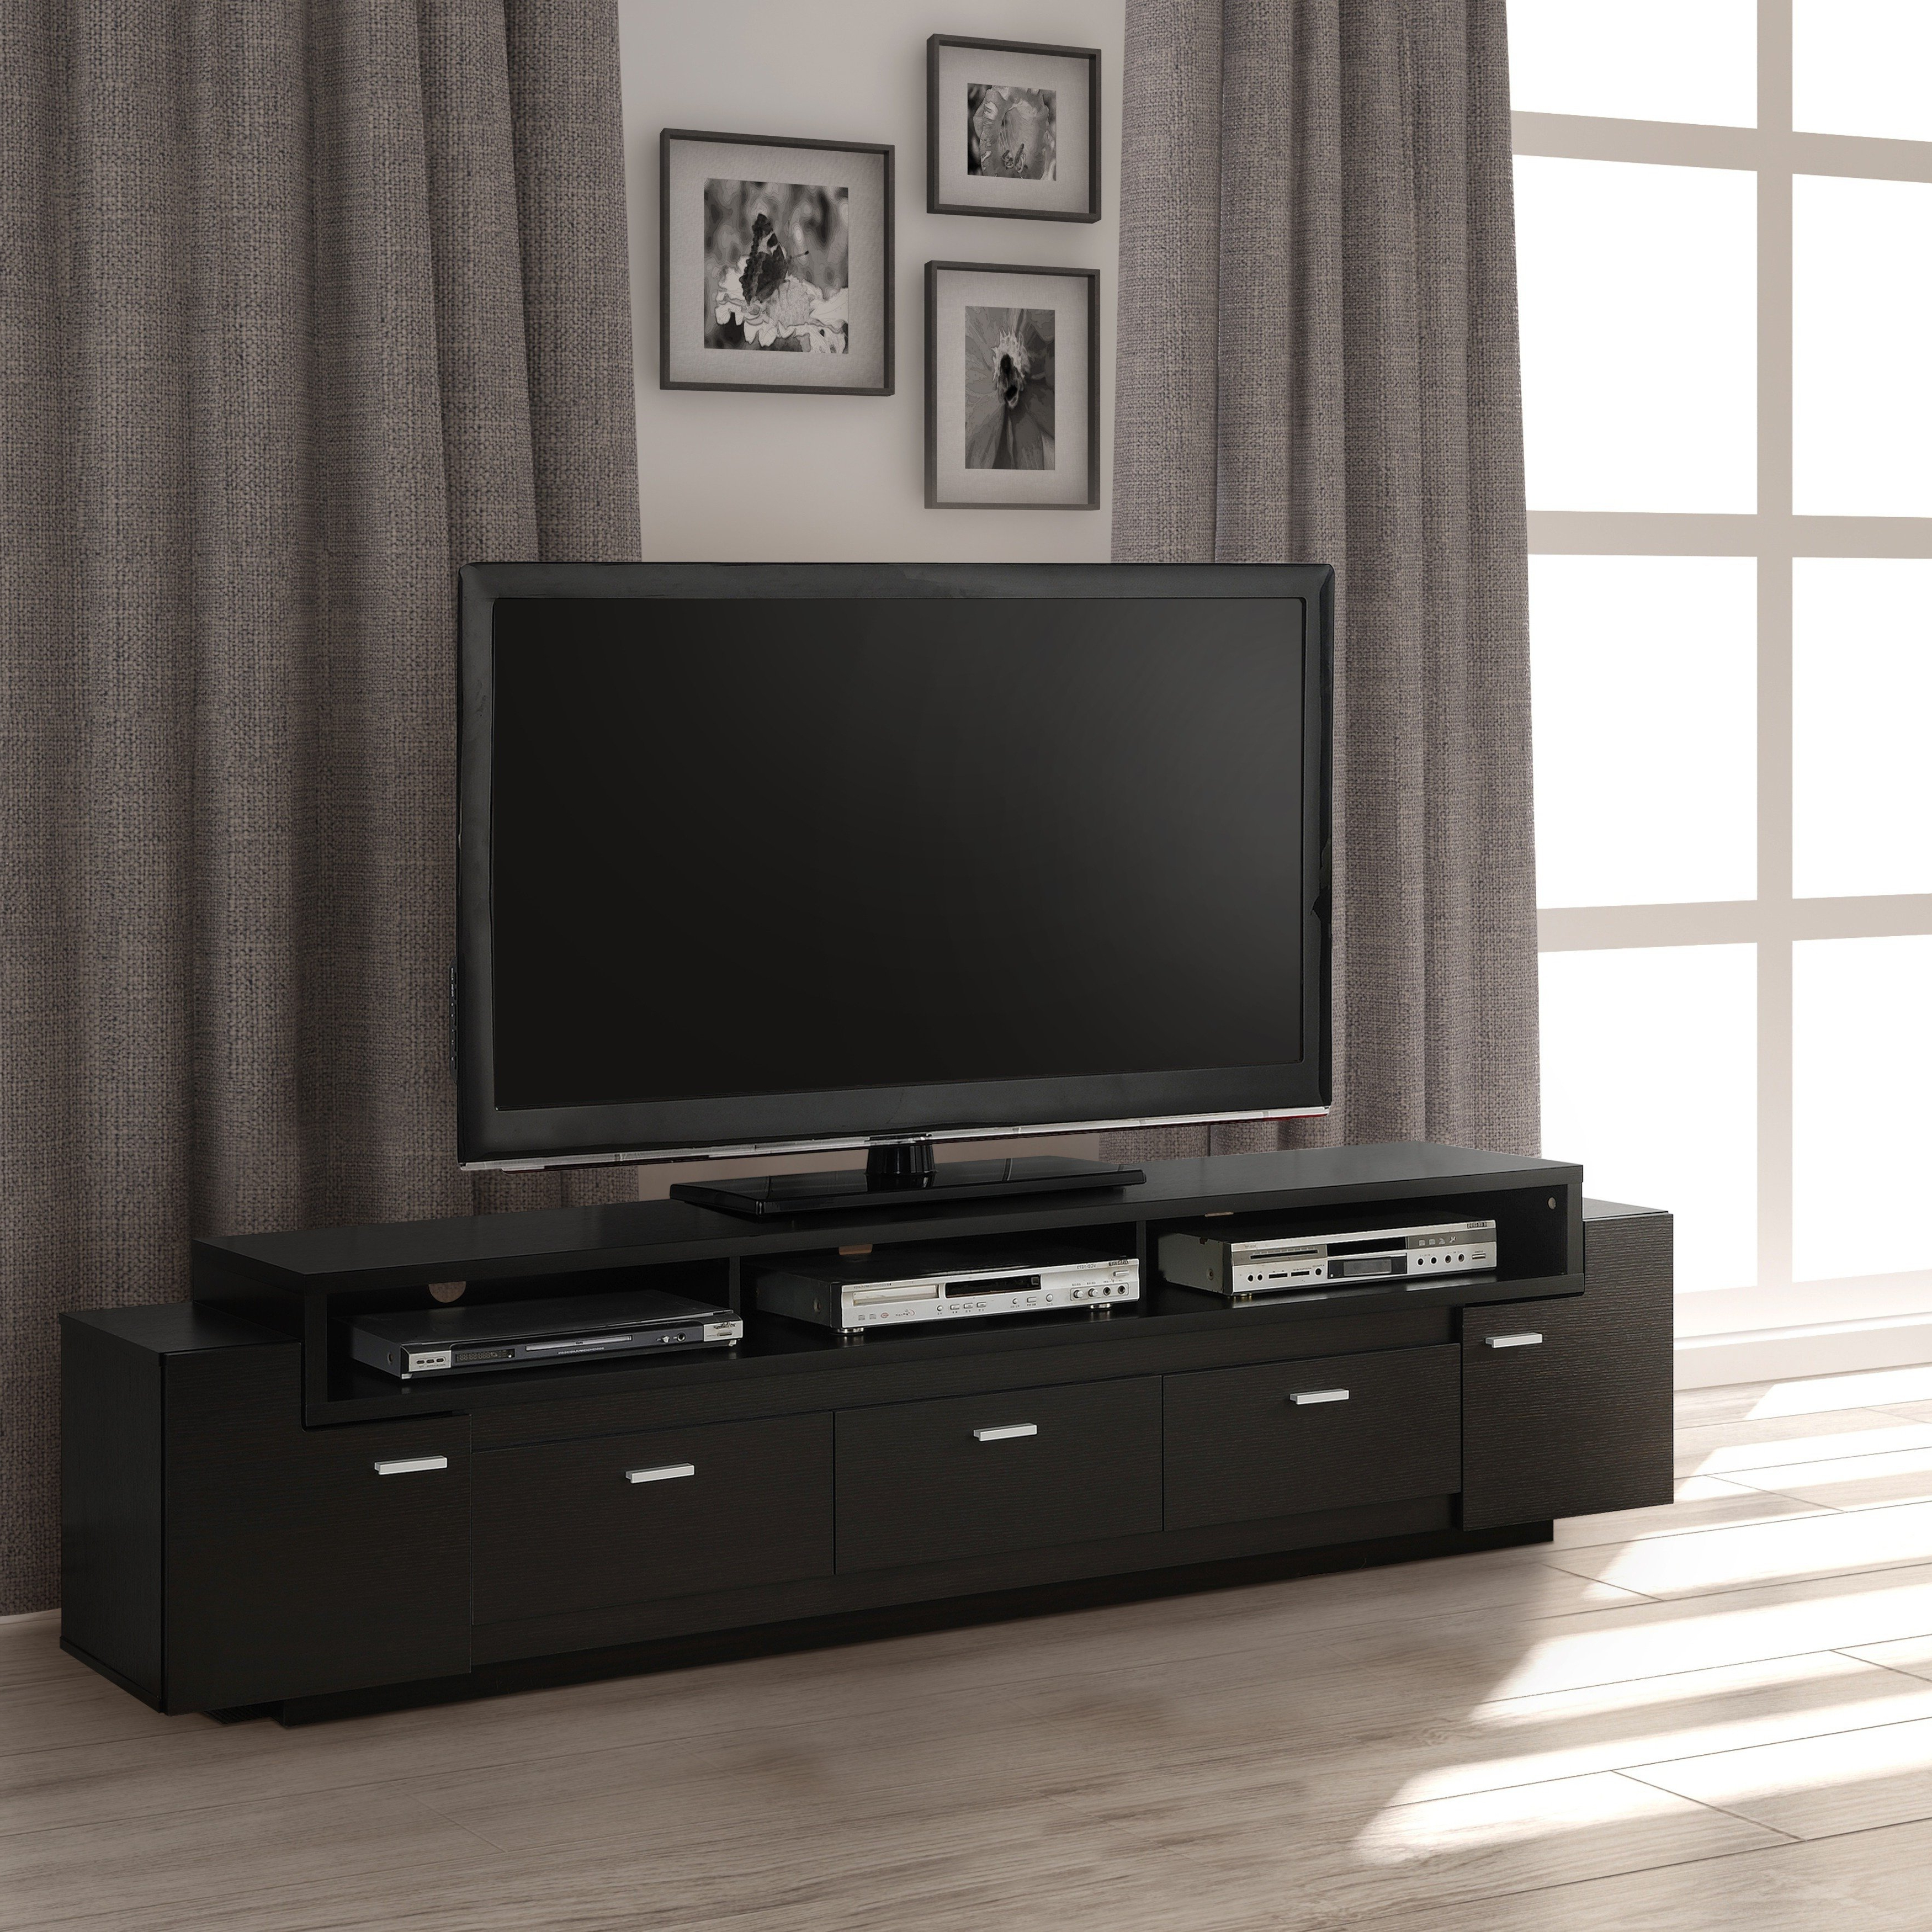 Most Recently Released 84 Inch Tv Stands With Regard To Shop Porch & Den Hubbard 84 Inch Tiered Tv Stand – On Sale – Free (View 4 of 20)